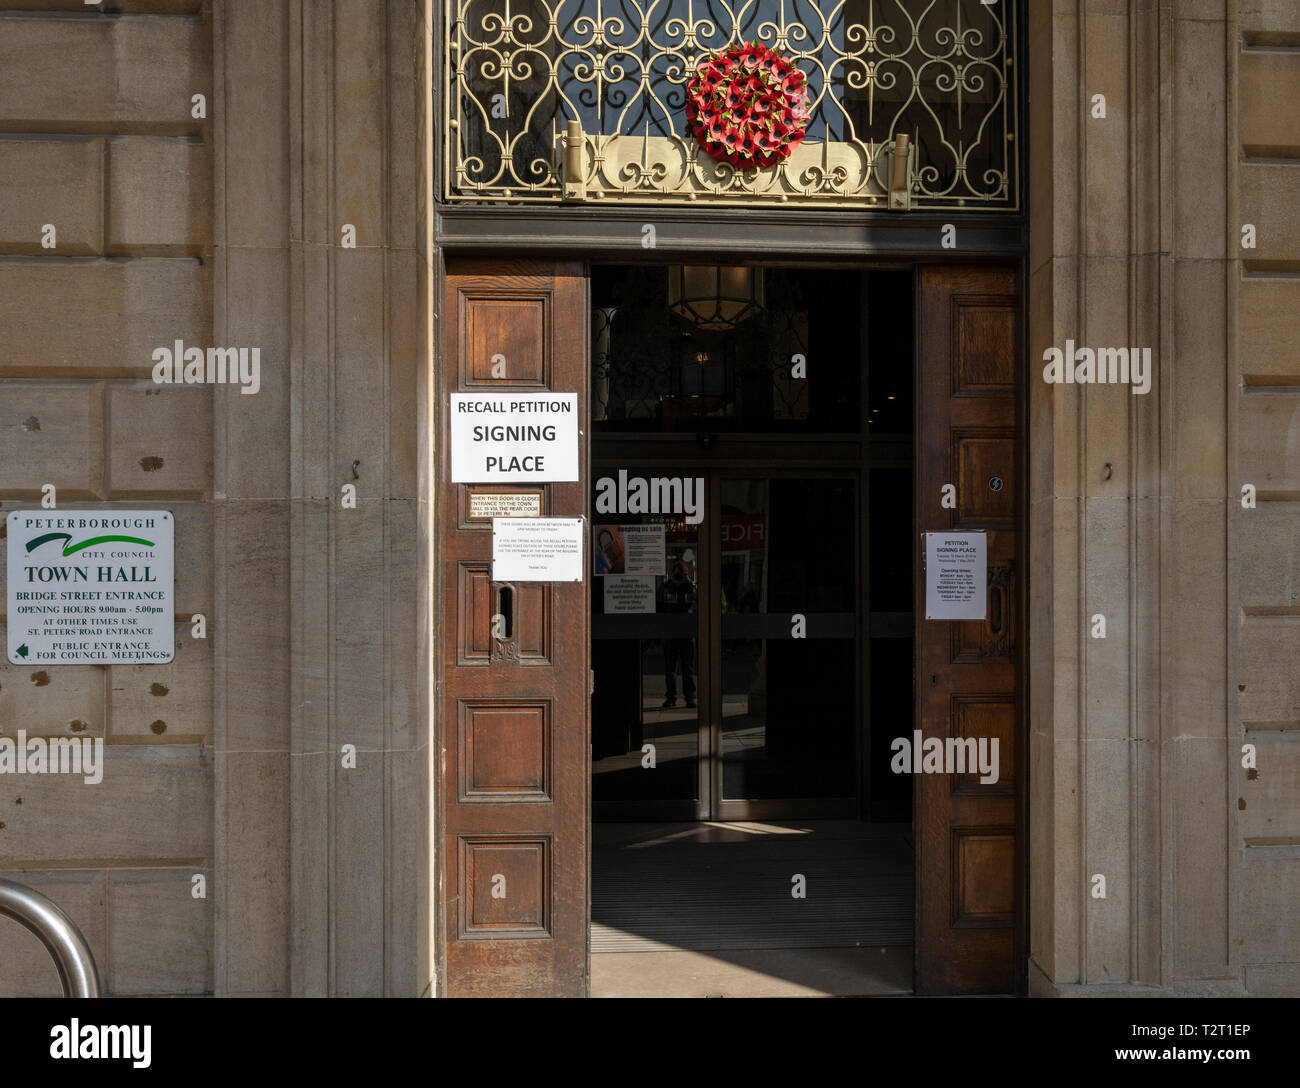 The front doorway of Peterborough Town Hall with signs relating to a recall petition to force convicted local MP Fiona Onasanya out of office - Stock Image